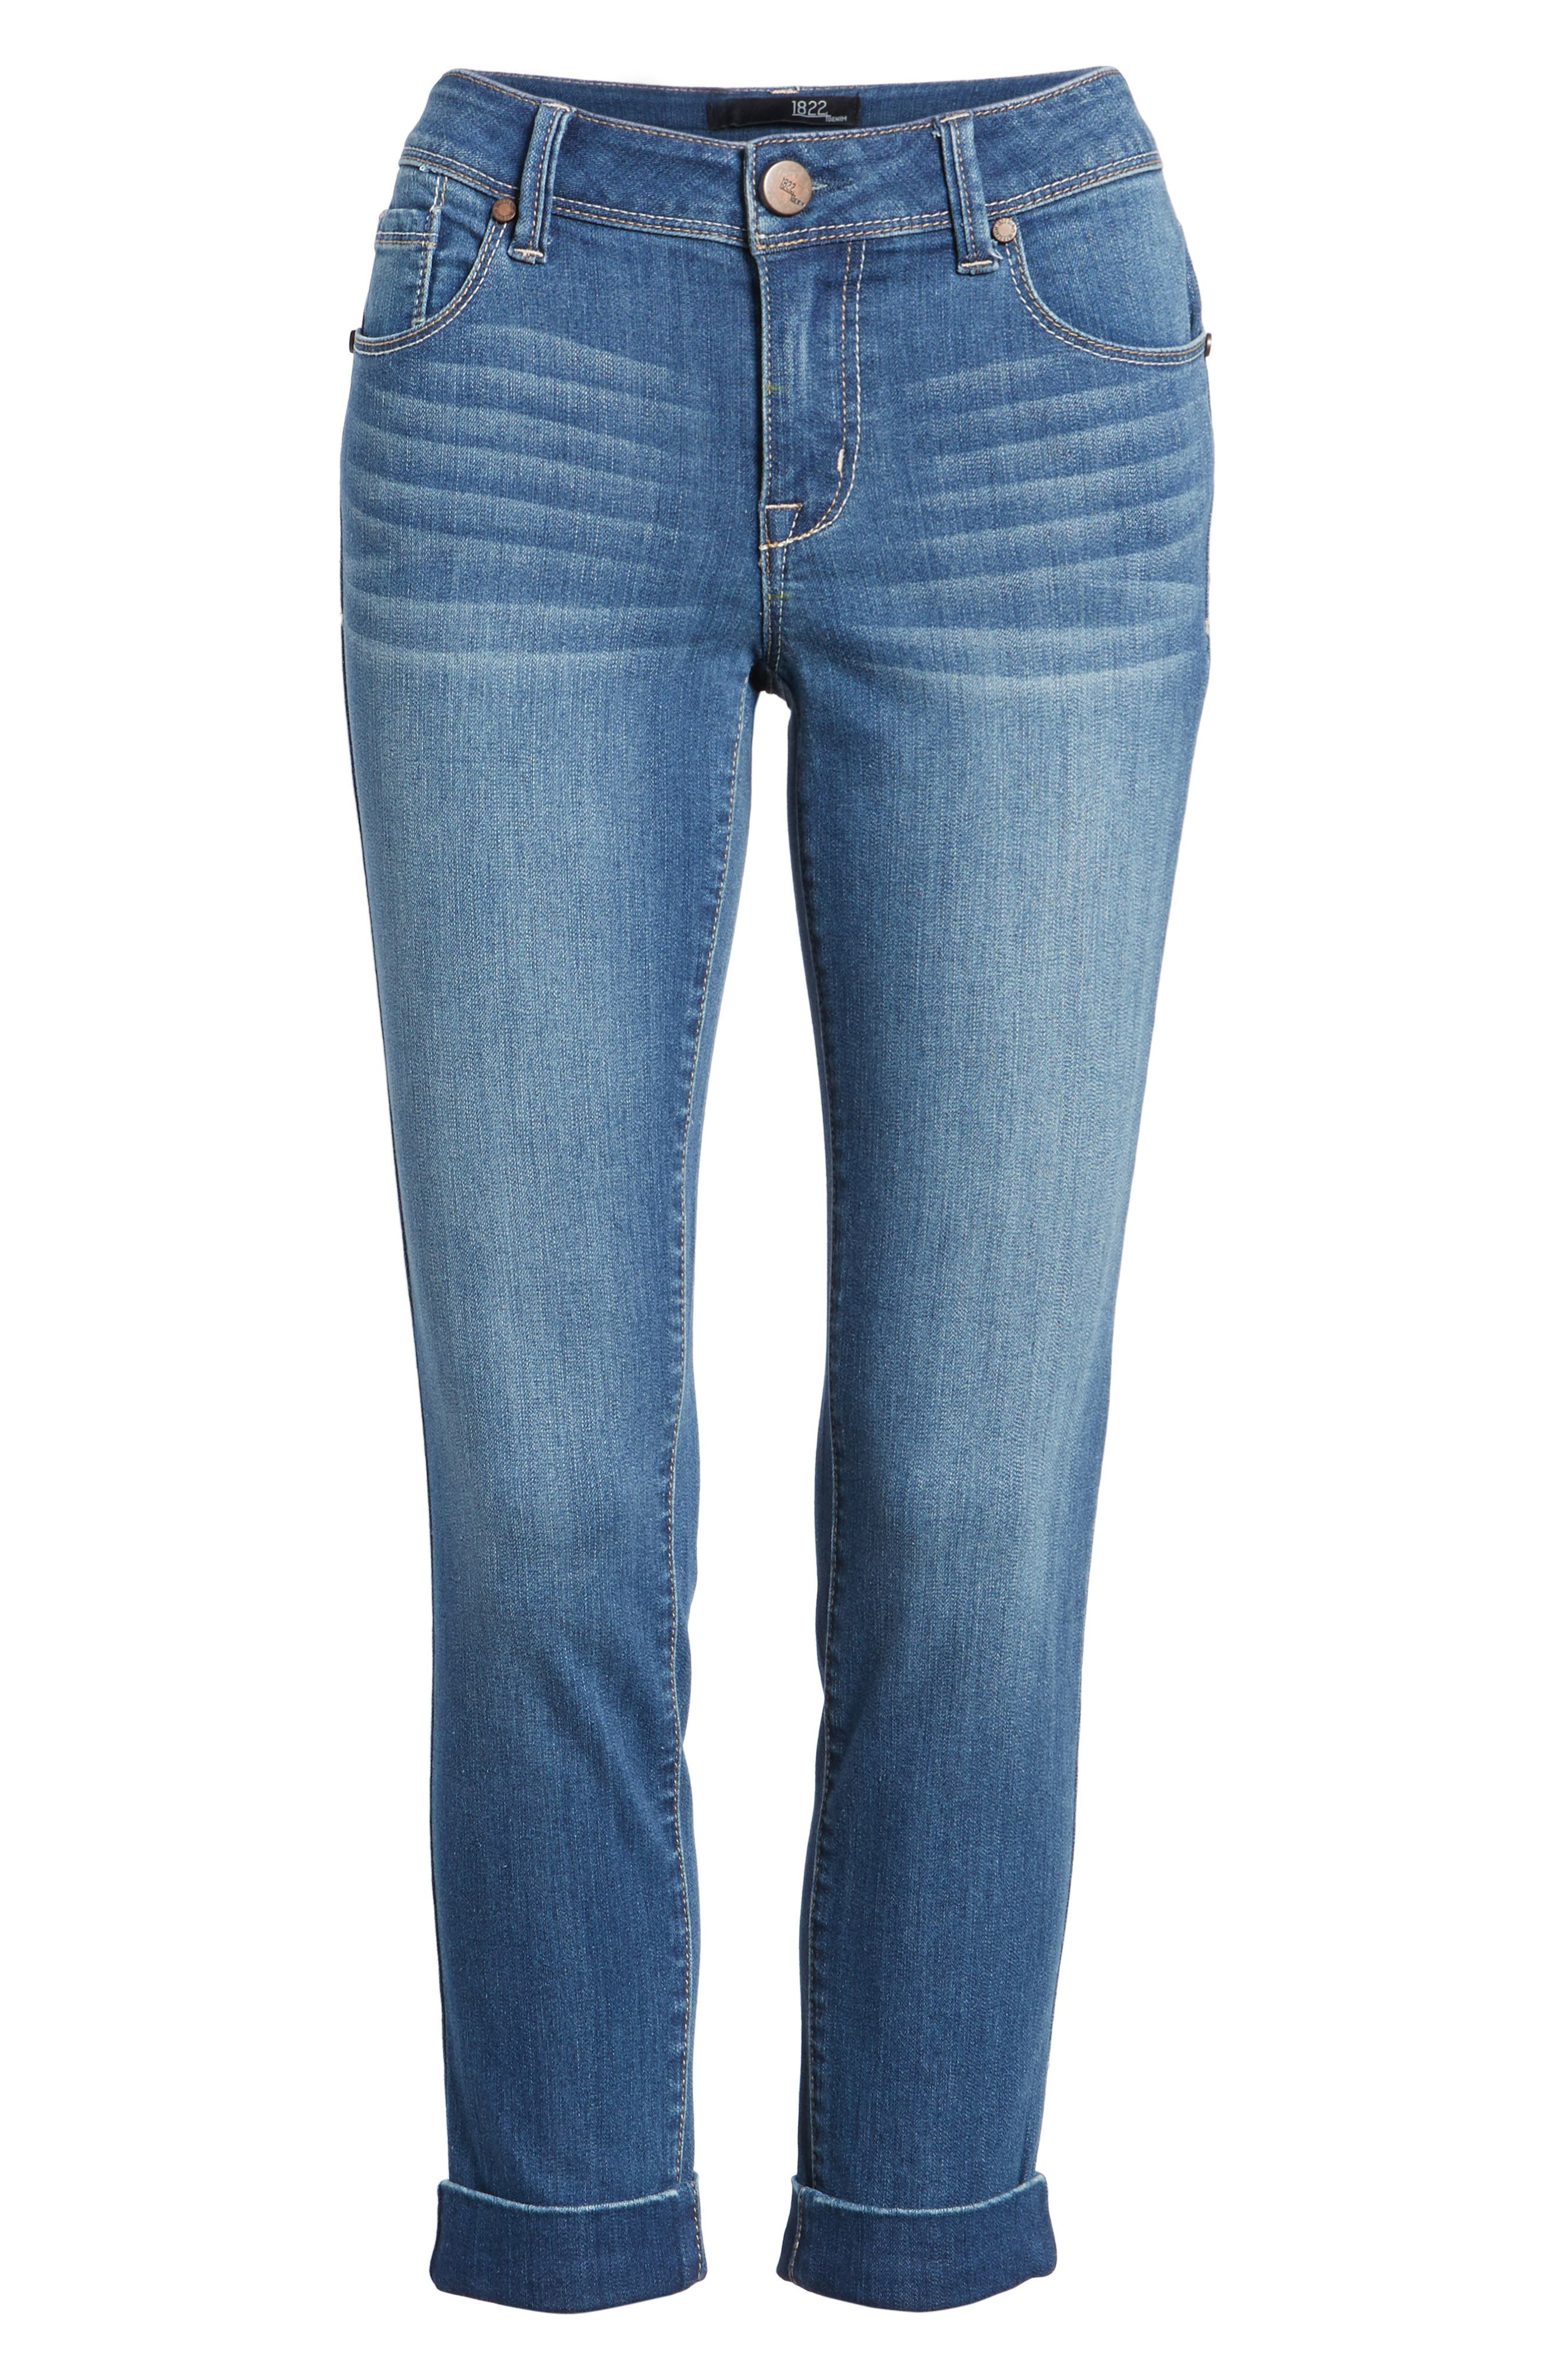 Cuff Roll Skinny Crop Jeans,                             Alternate thumbnail 7, color,                             LOUISE